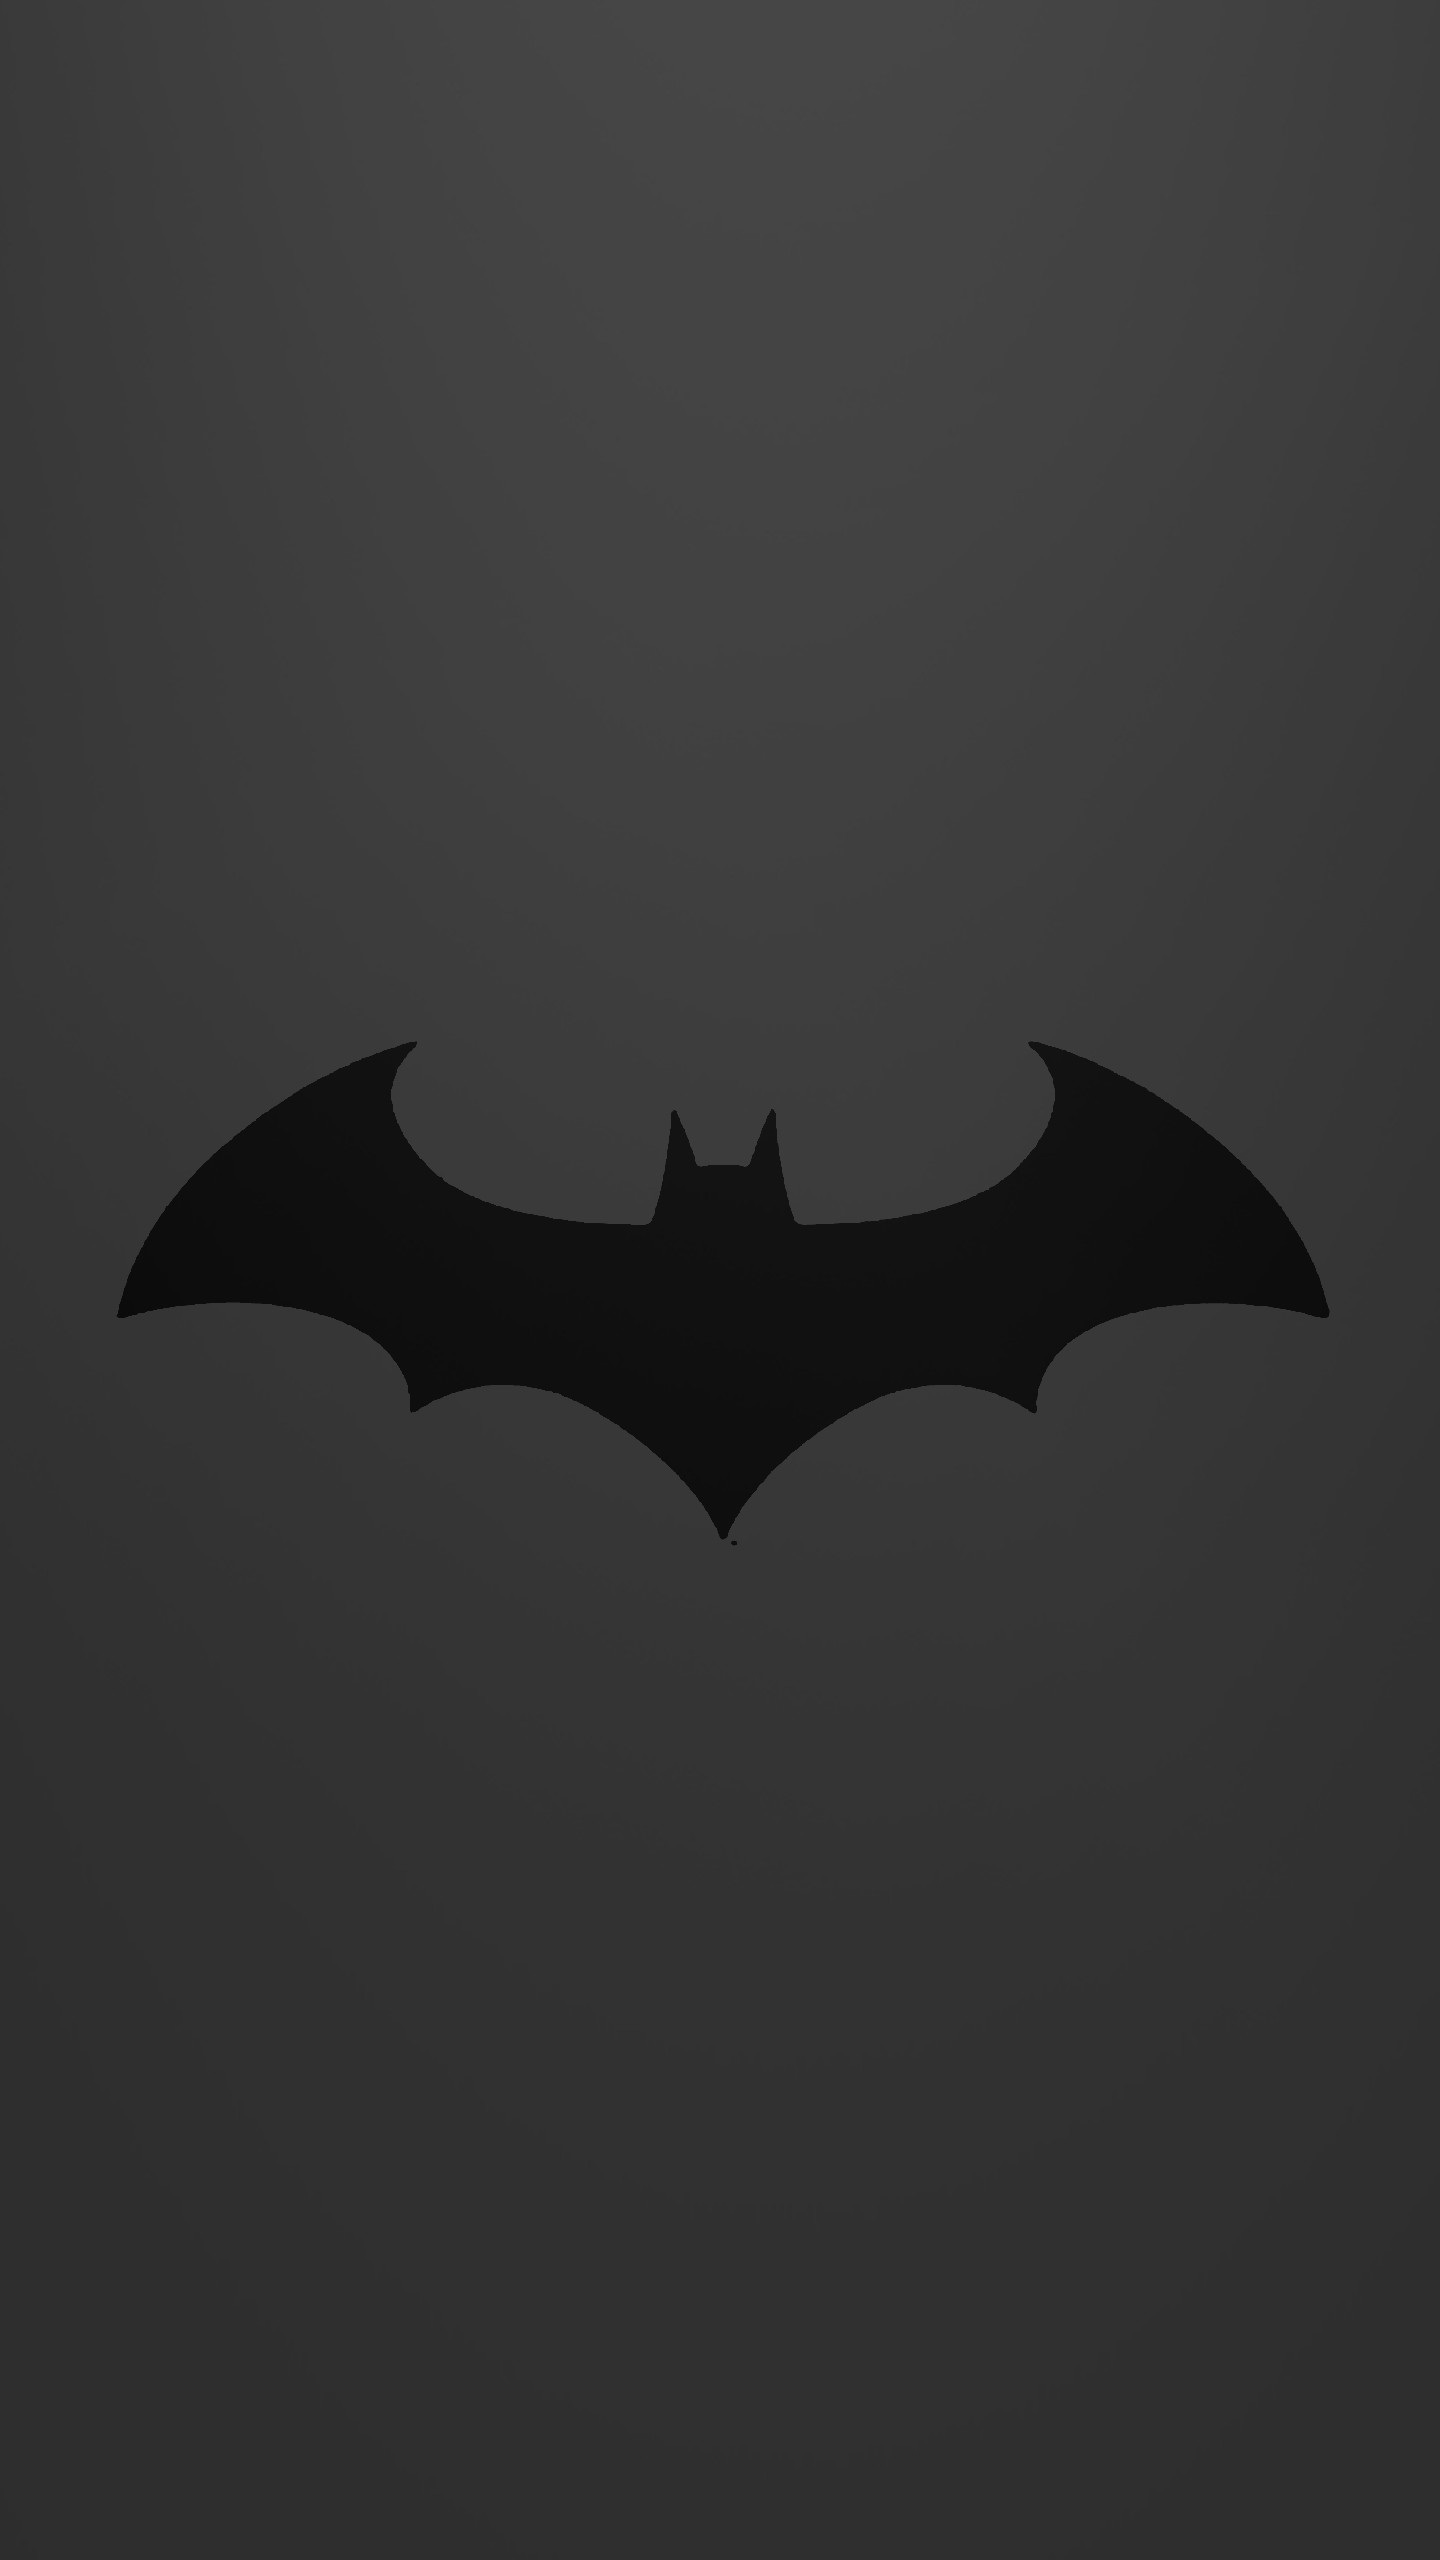 Batman Minimalist Wallpaper 72 Images